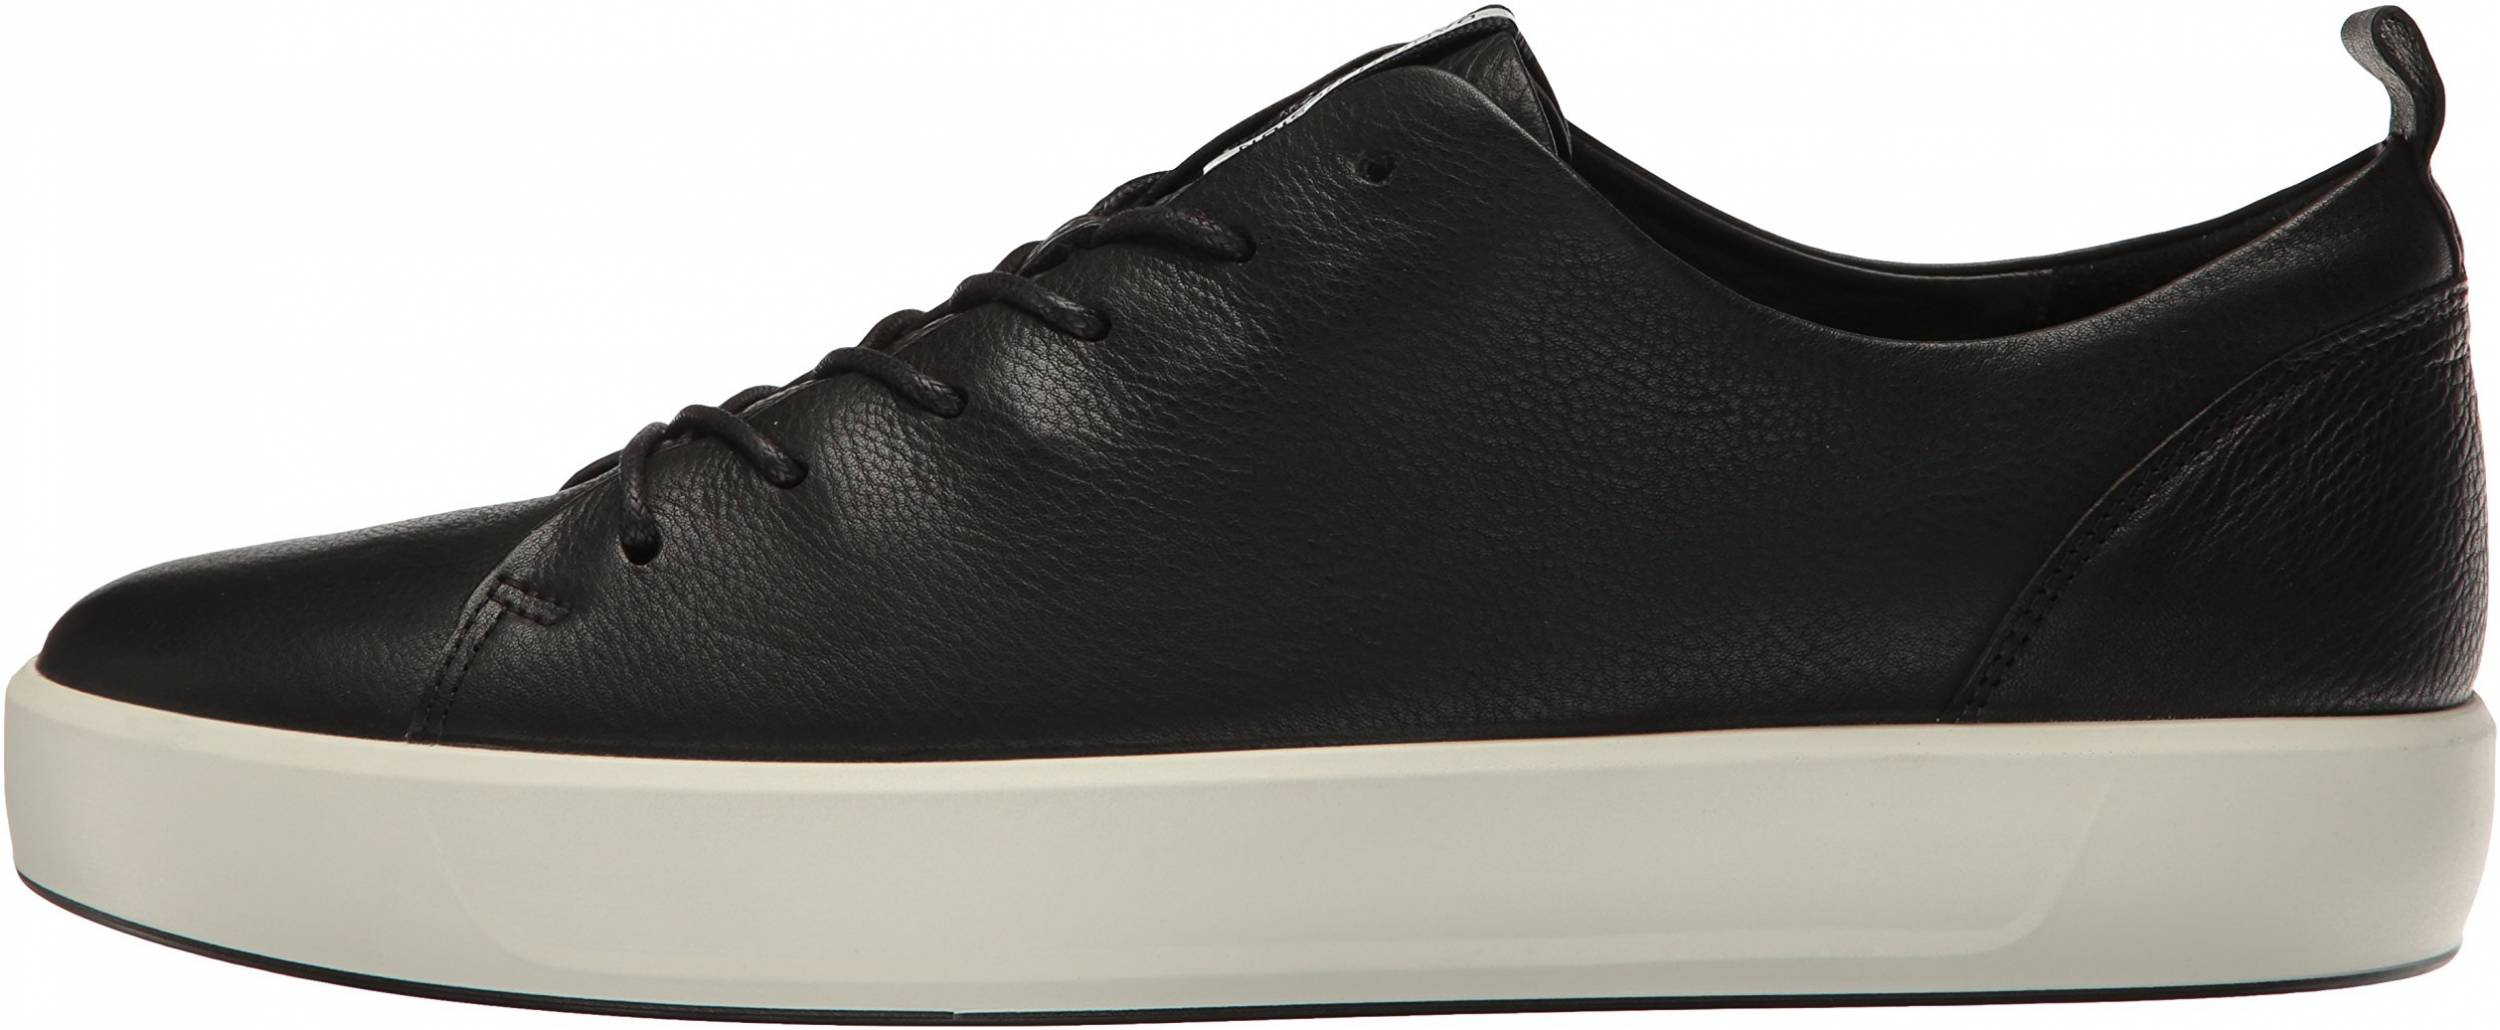 Save 45% on Ecco Sneakers (44 Models in